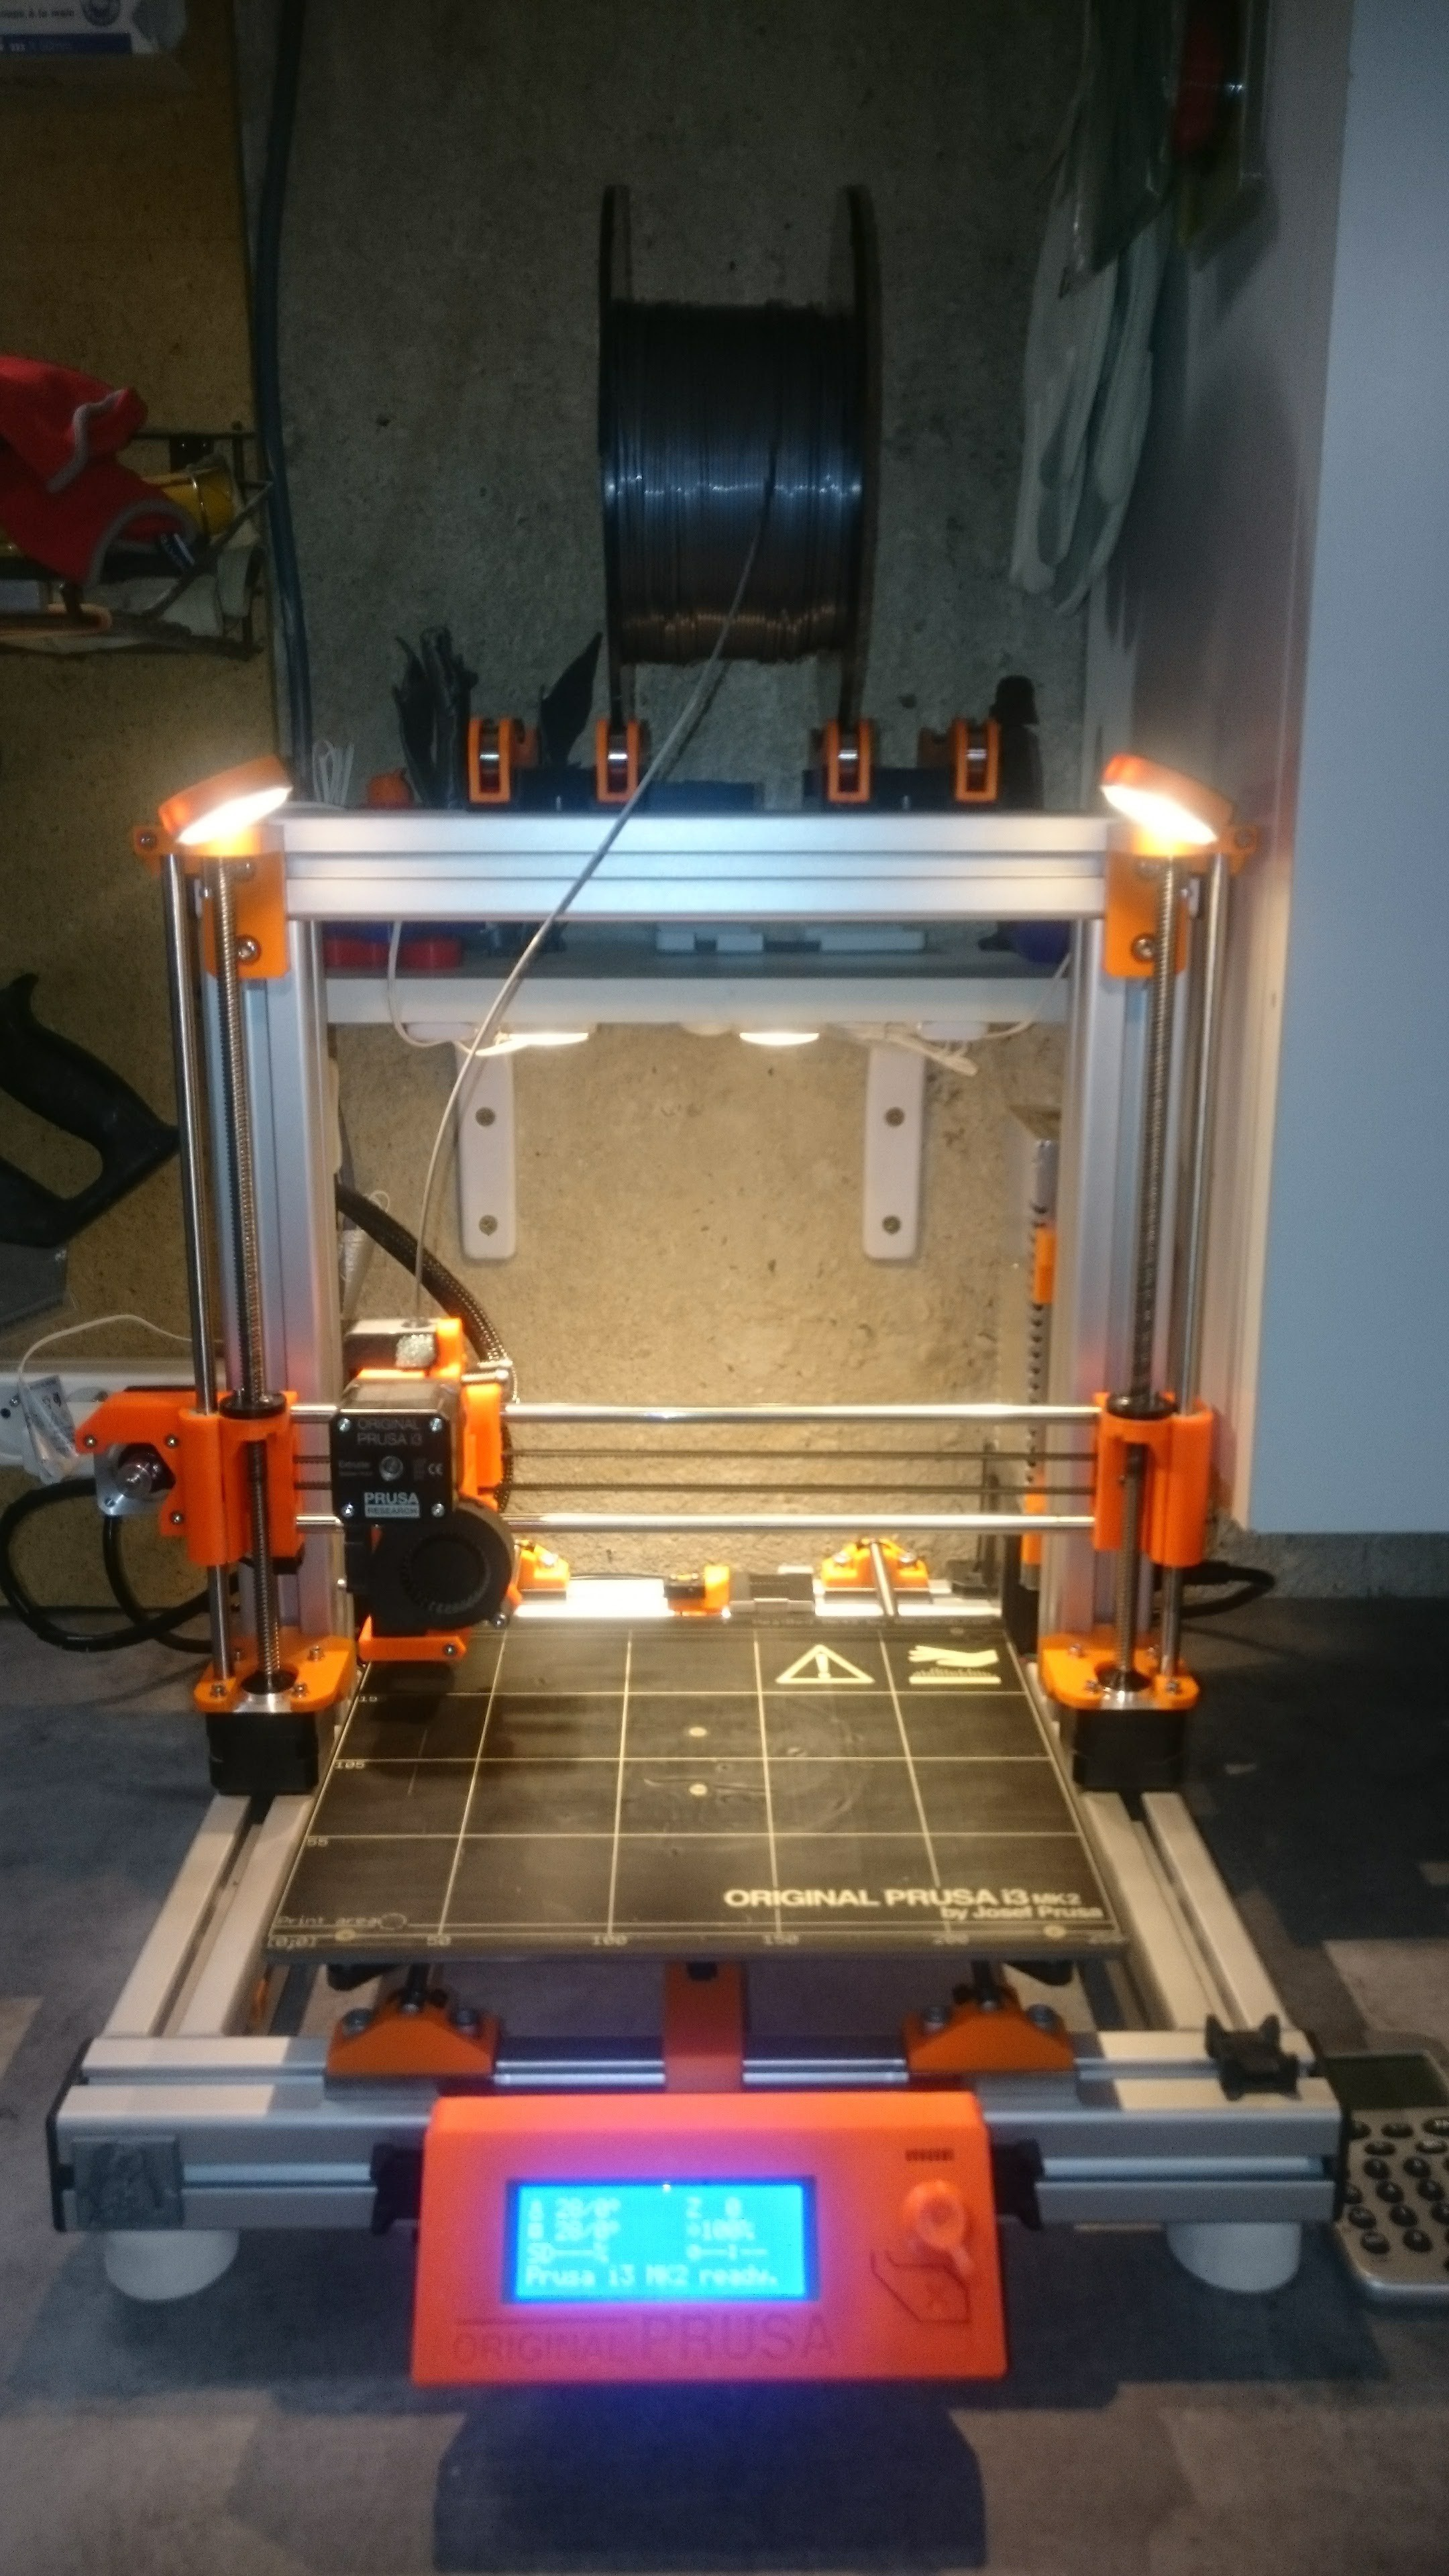 DSC_1062.jpg Download free STL file Modified Prusa i3 MK2S • 3D printer model, Ldom21